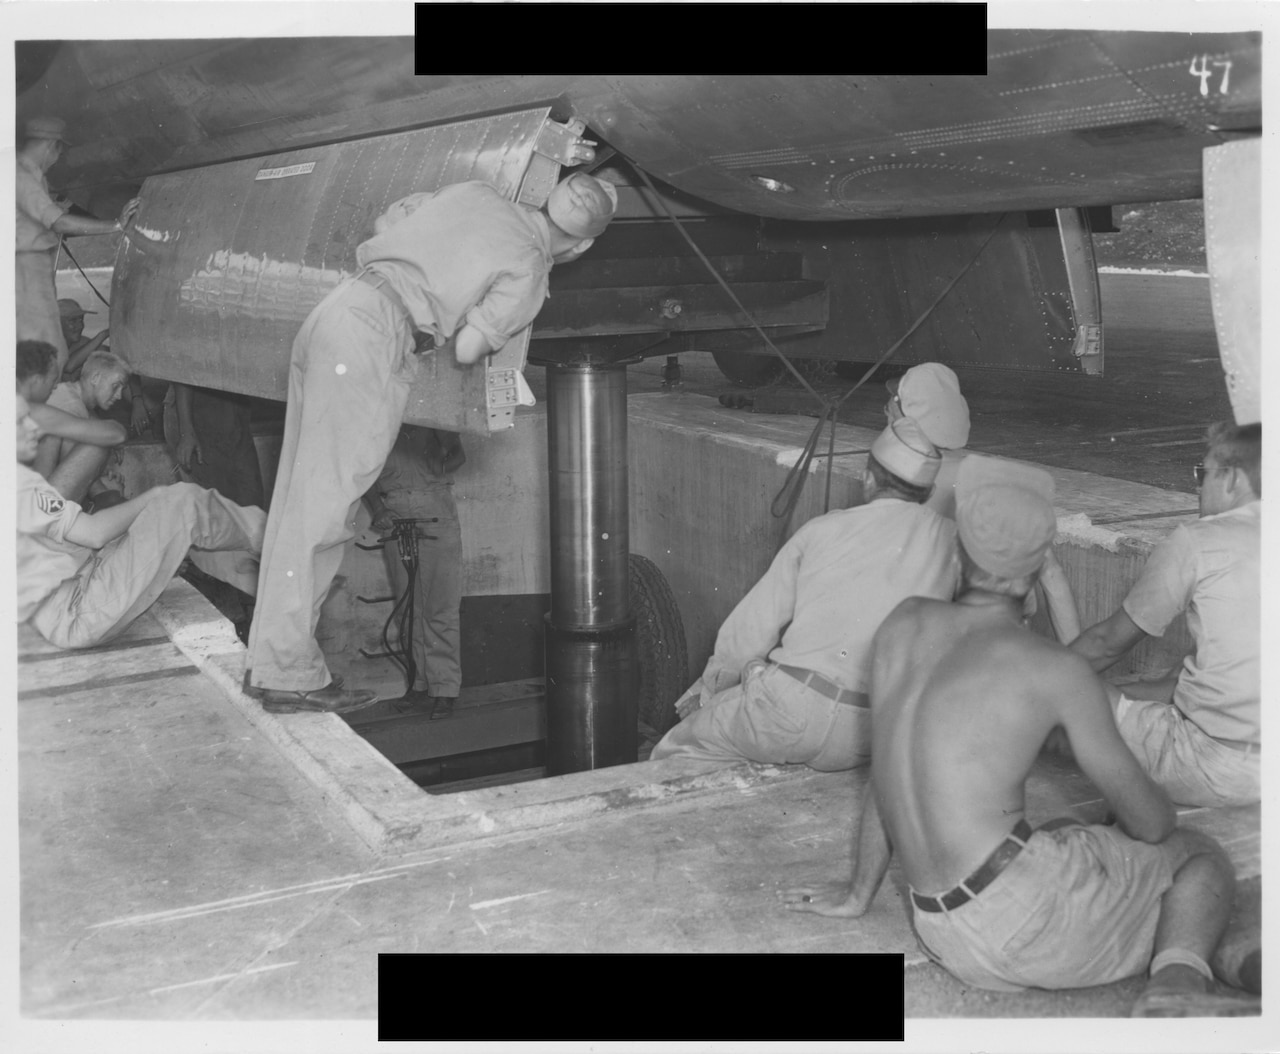 Several men look into the belly of an open airplane.